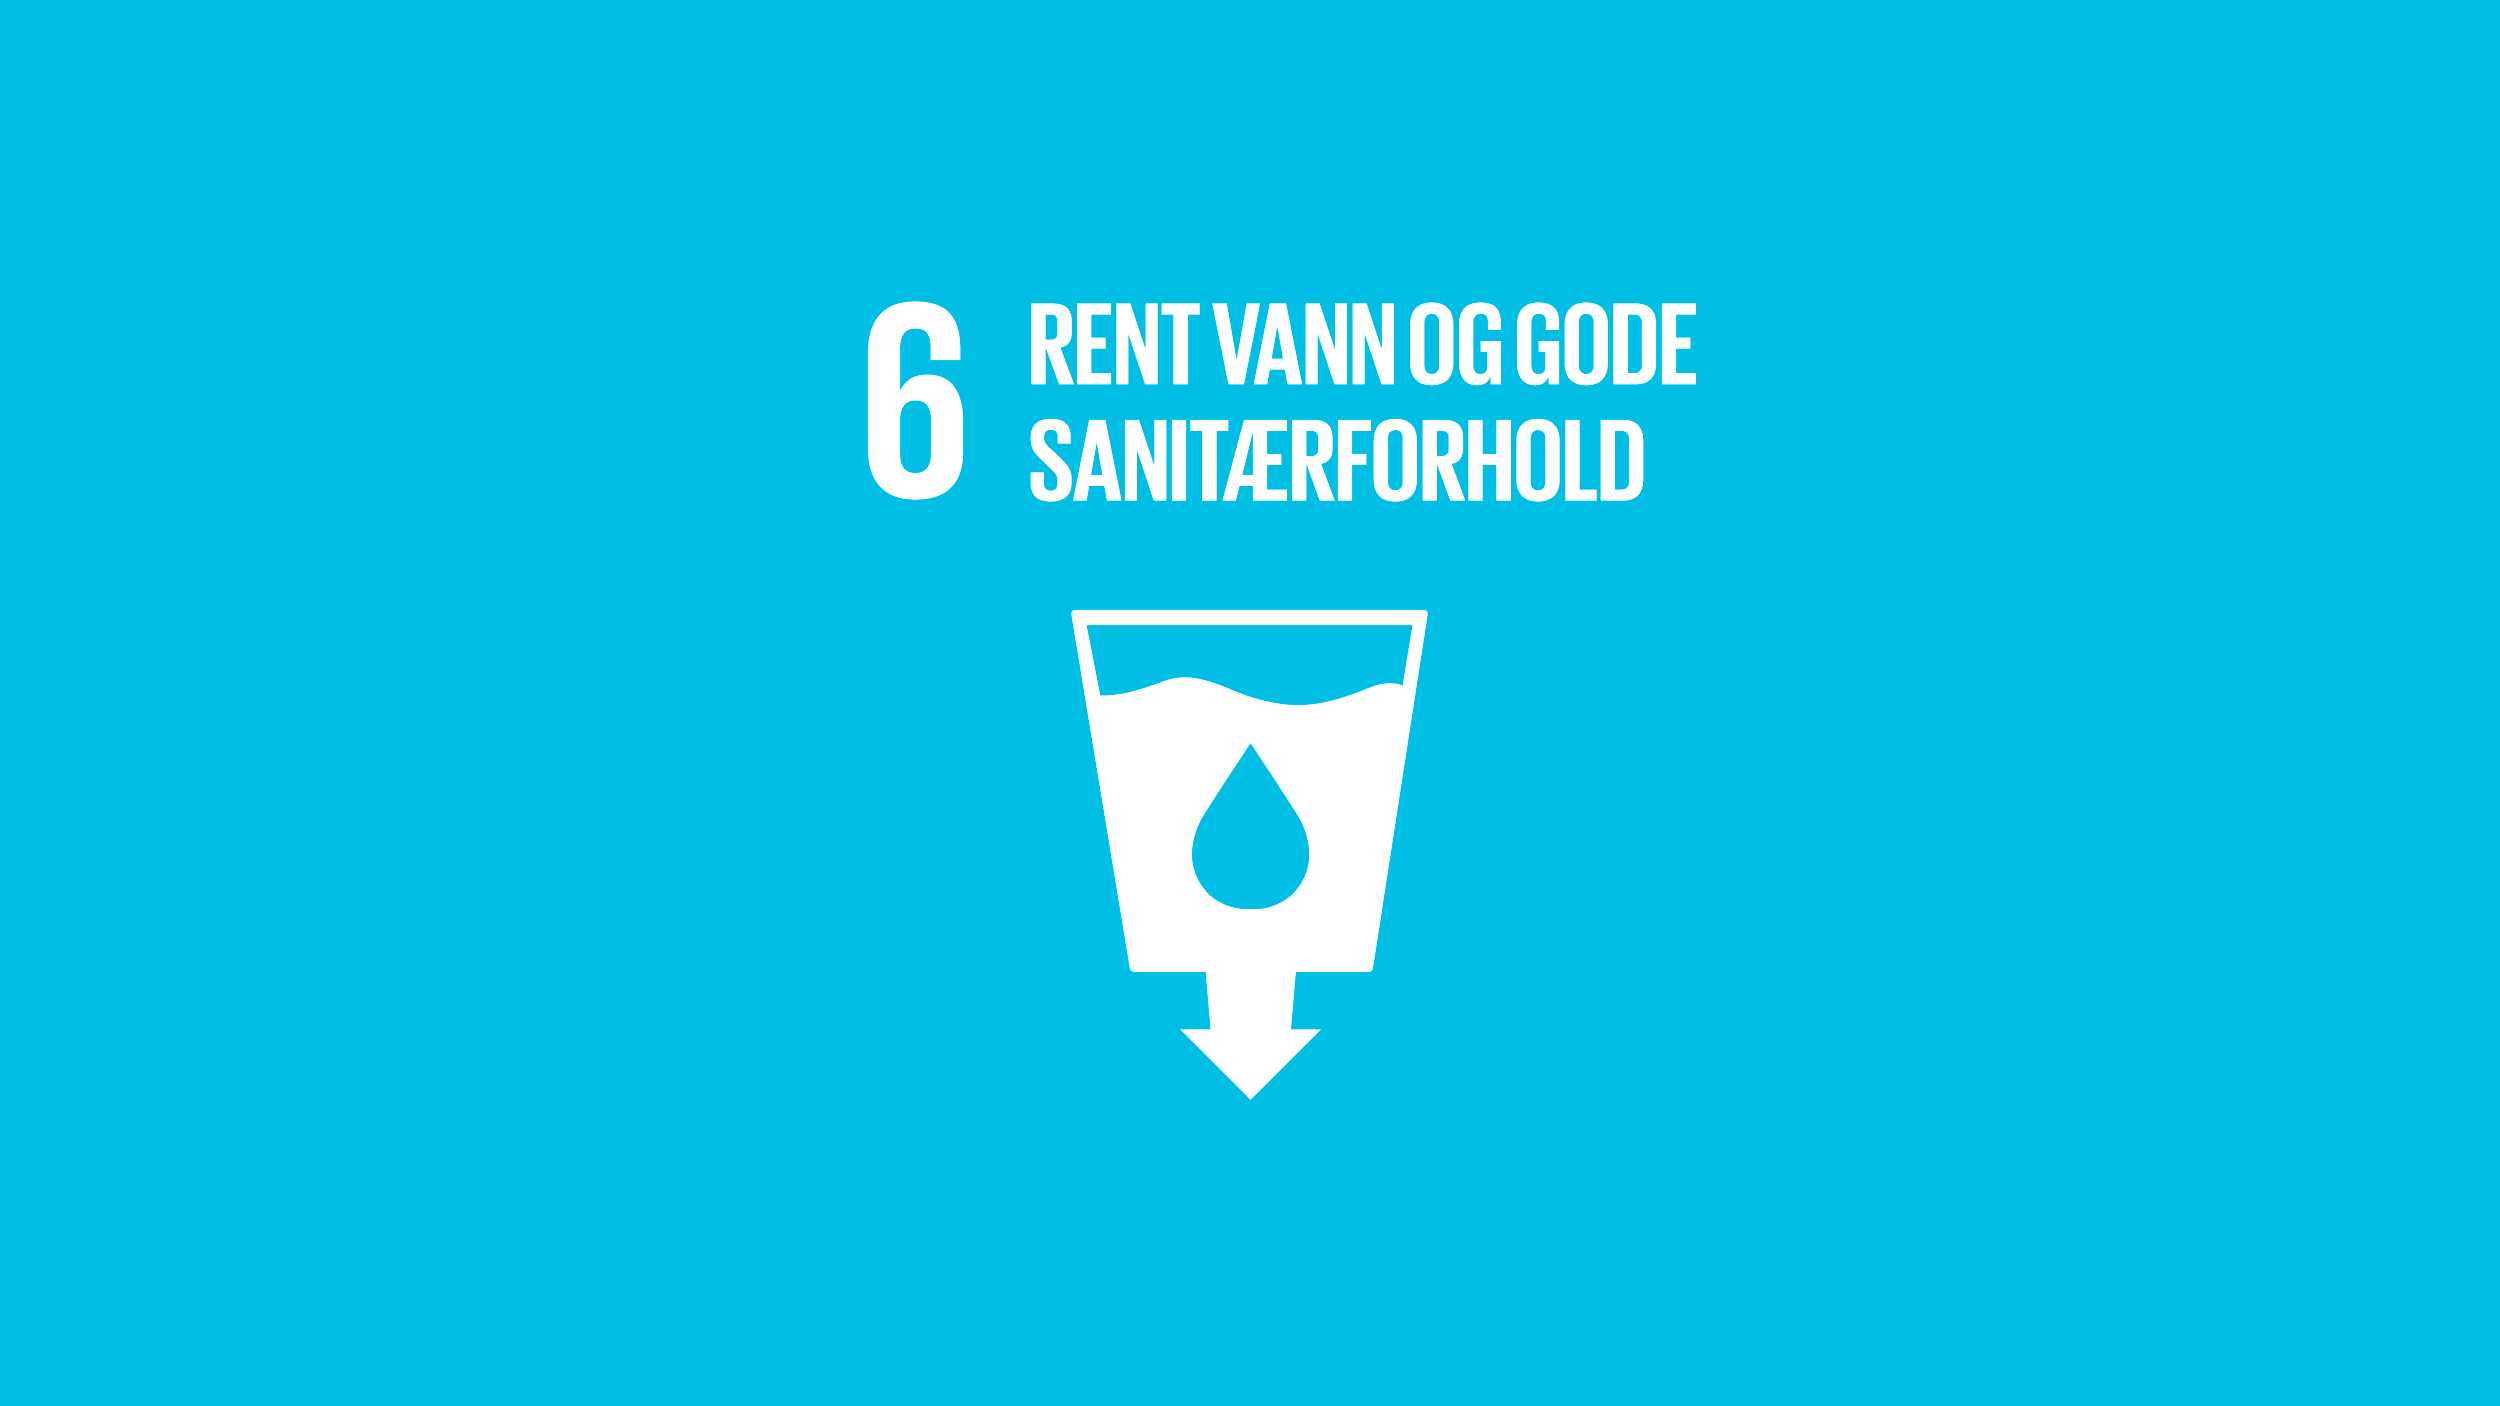 6 Rent vann og gode saniterforhold.png